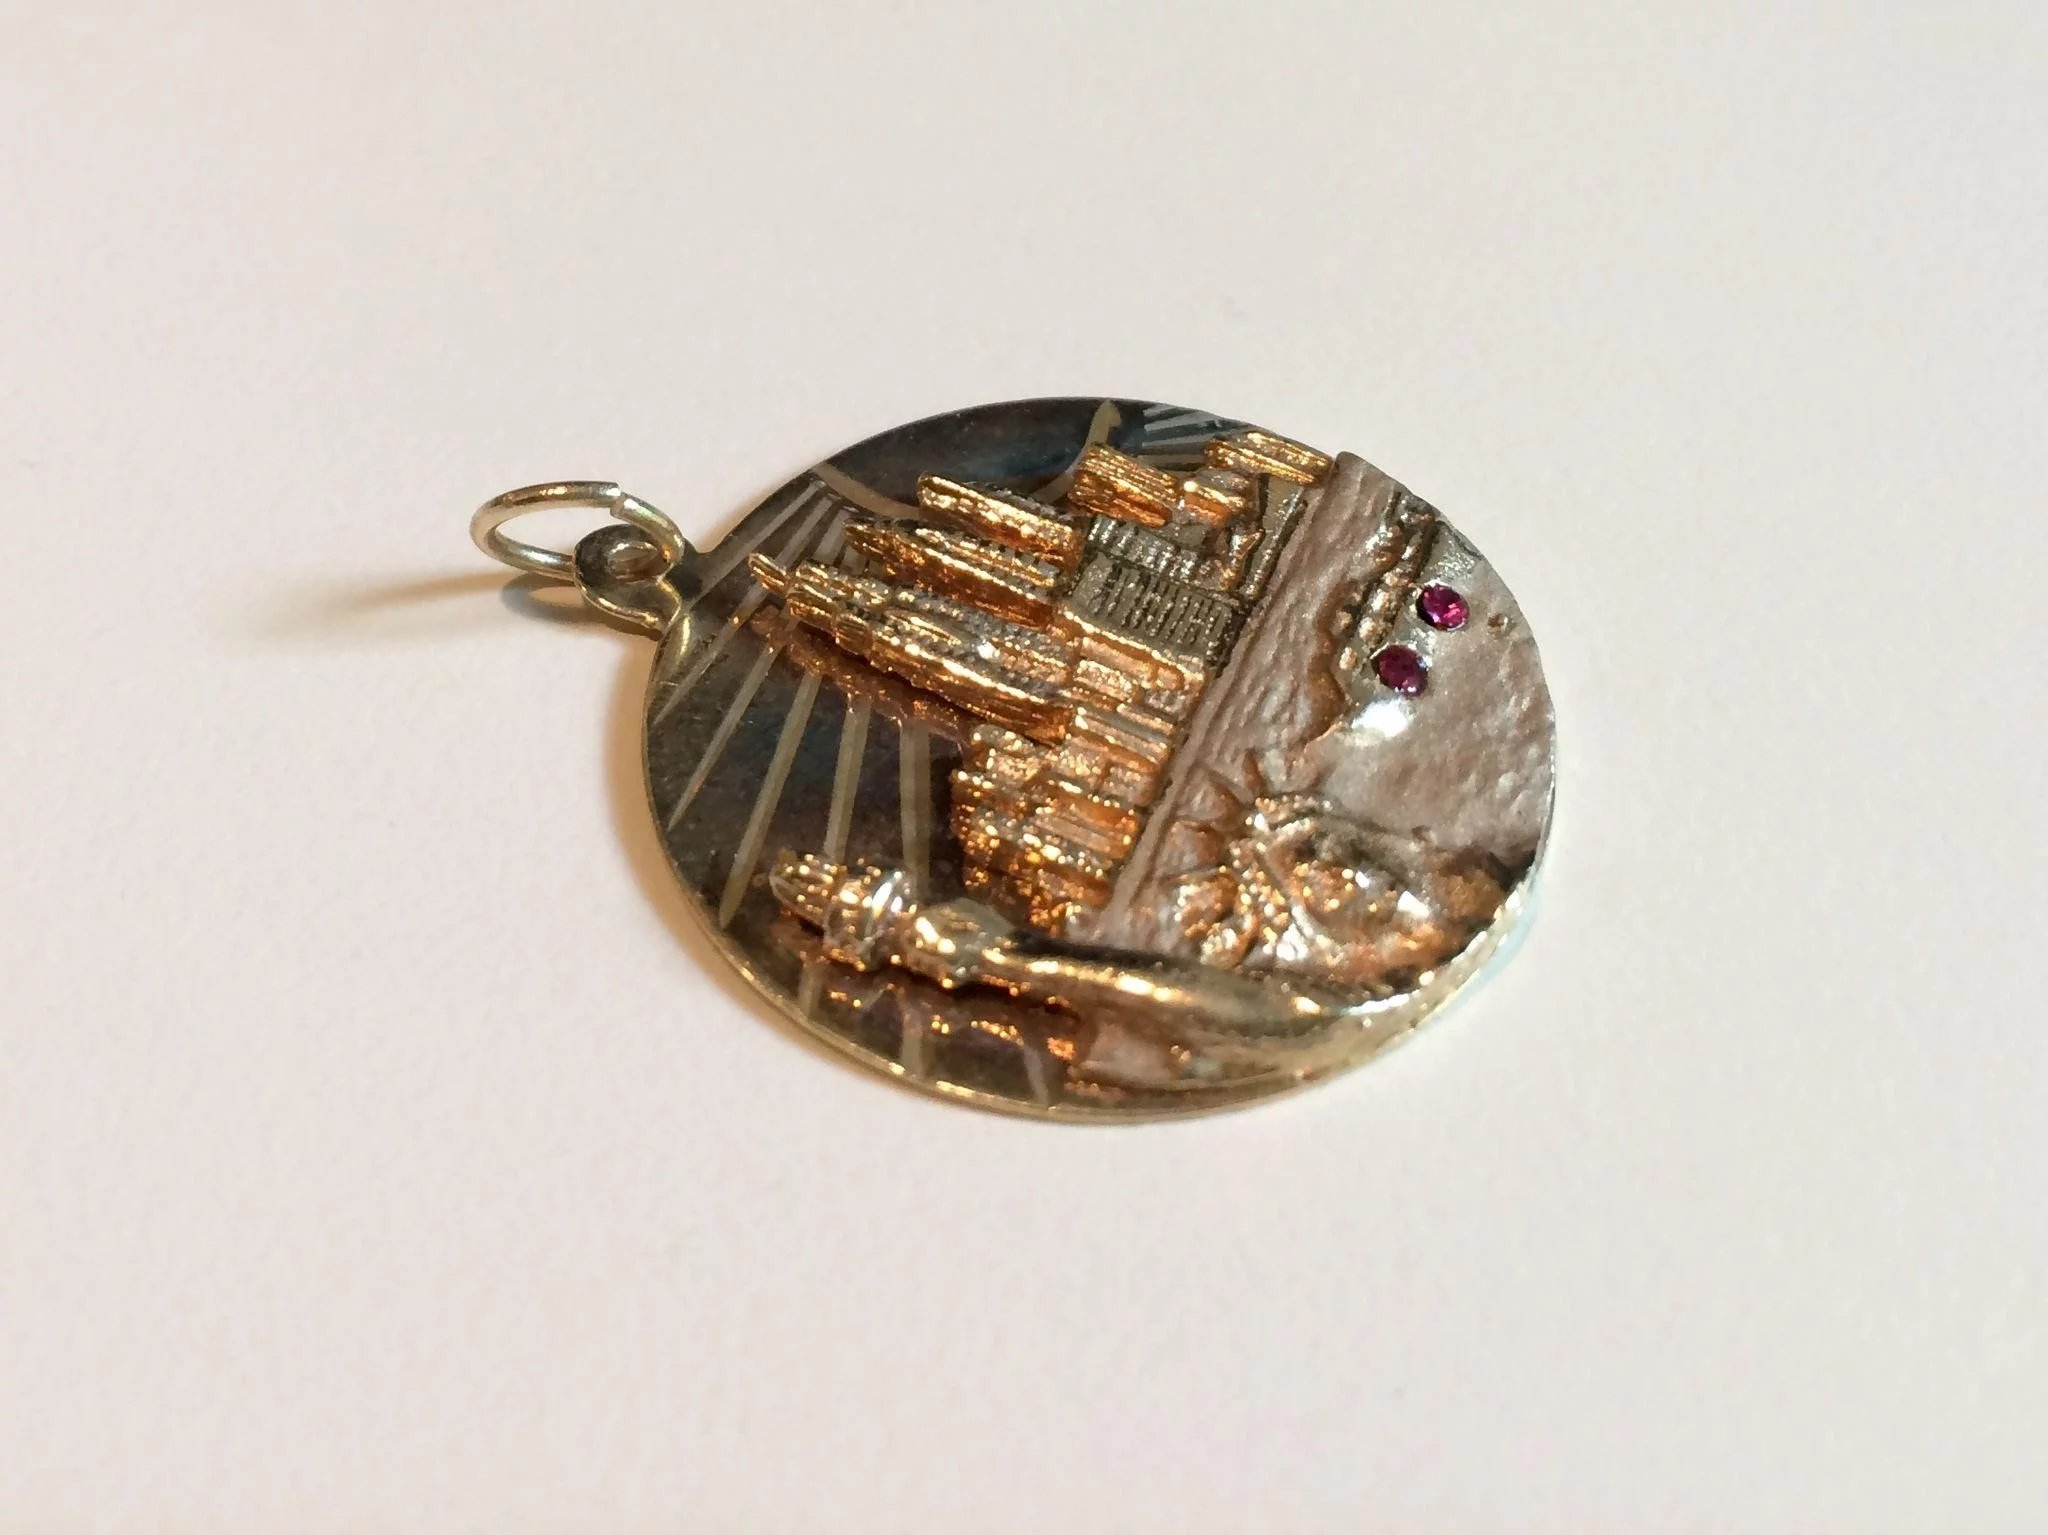 skyline charm police item liberty click to pendant badge of city linda york new statue expand full